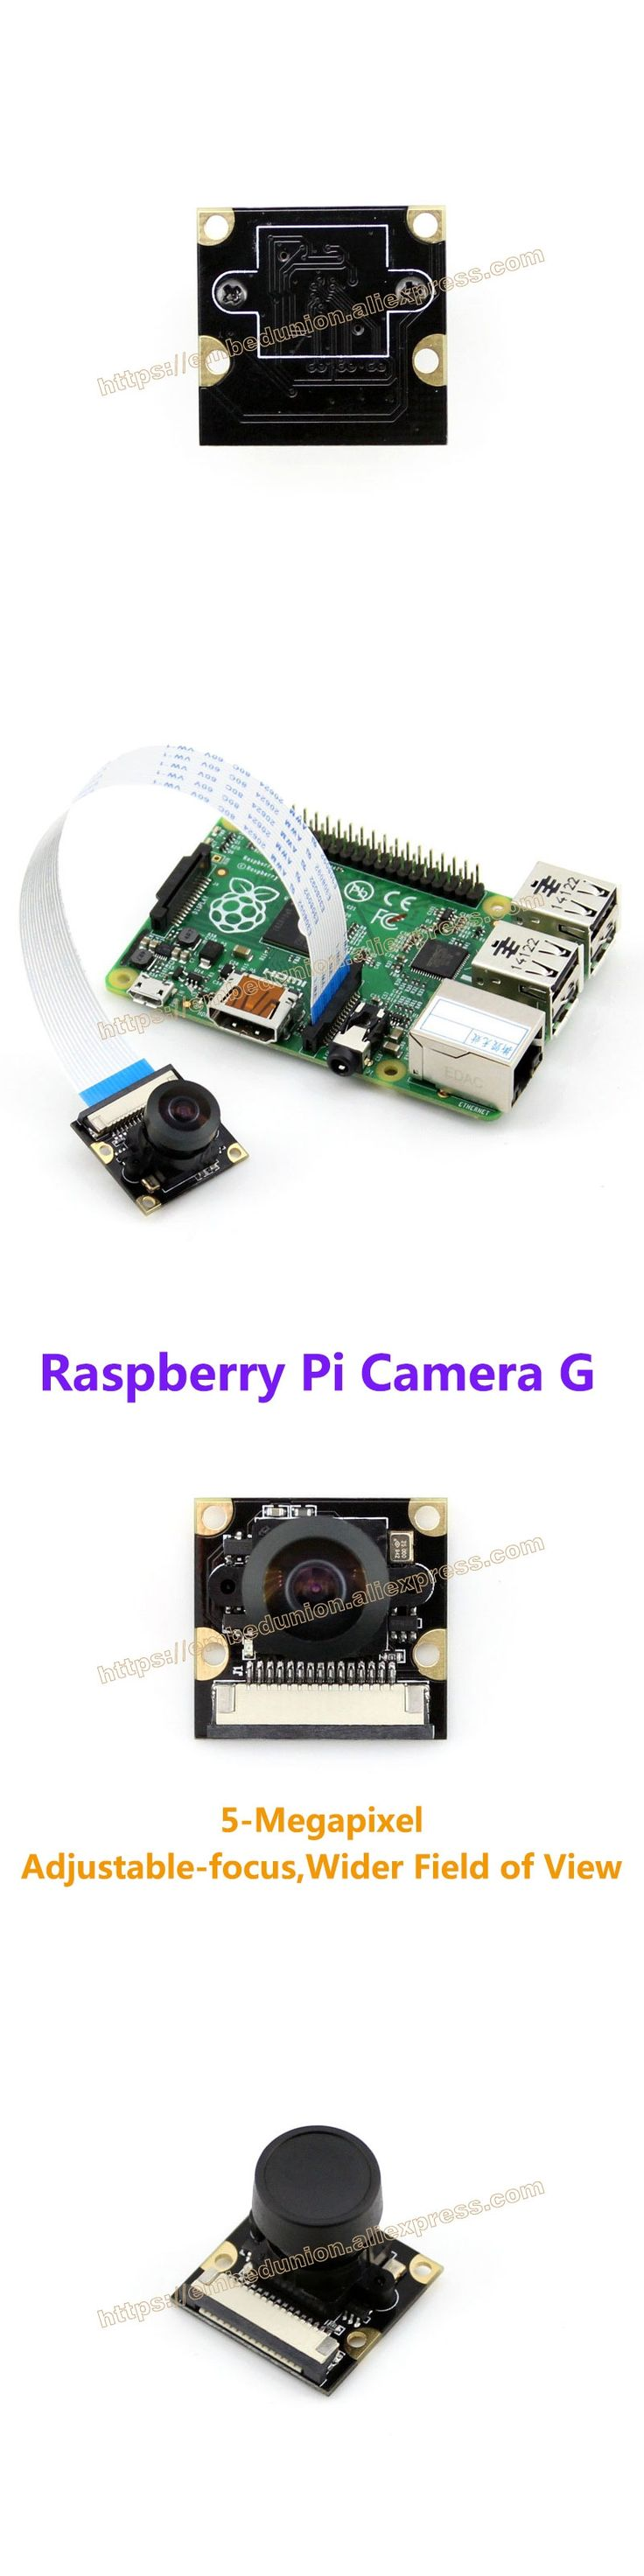 Raspberry Pi Camera G Module Supports all Revision of Raspberry Pi 5-Megapixel OV5647 Sensor Adjustable Focal Fisheye Lens